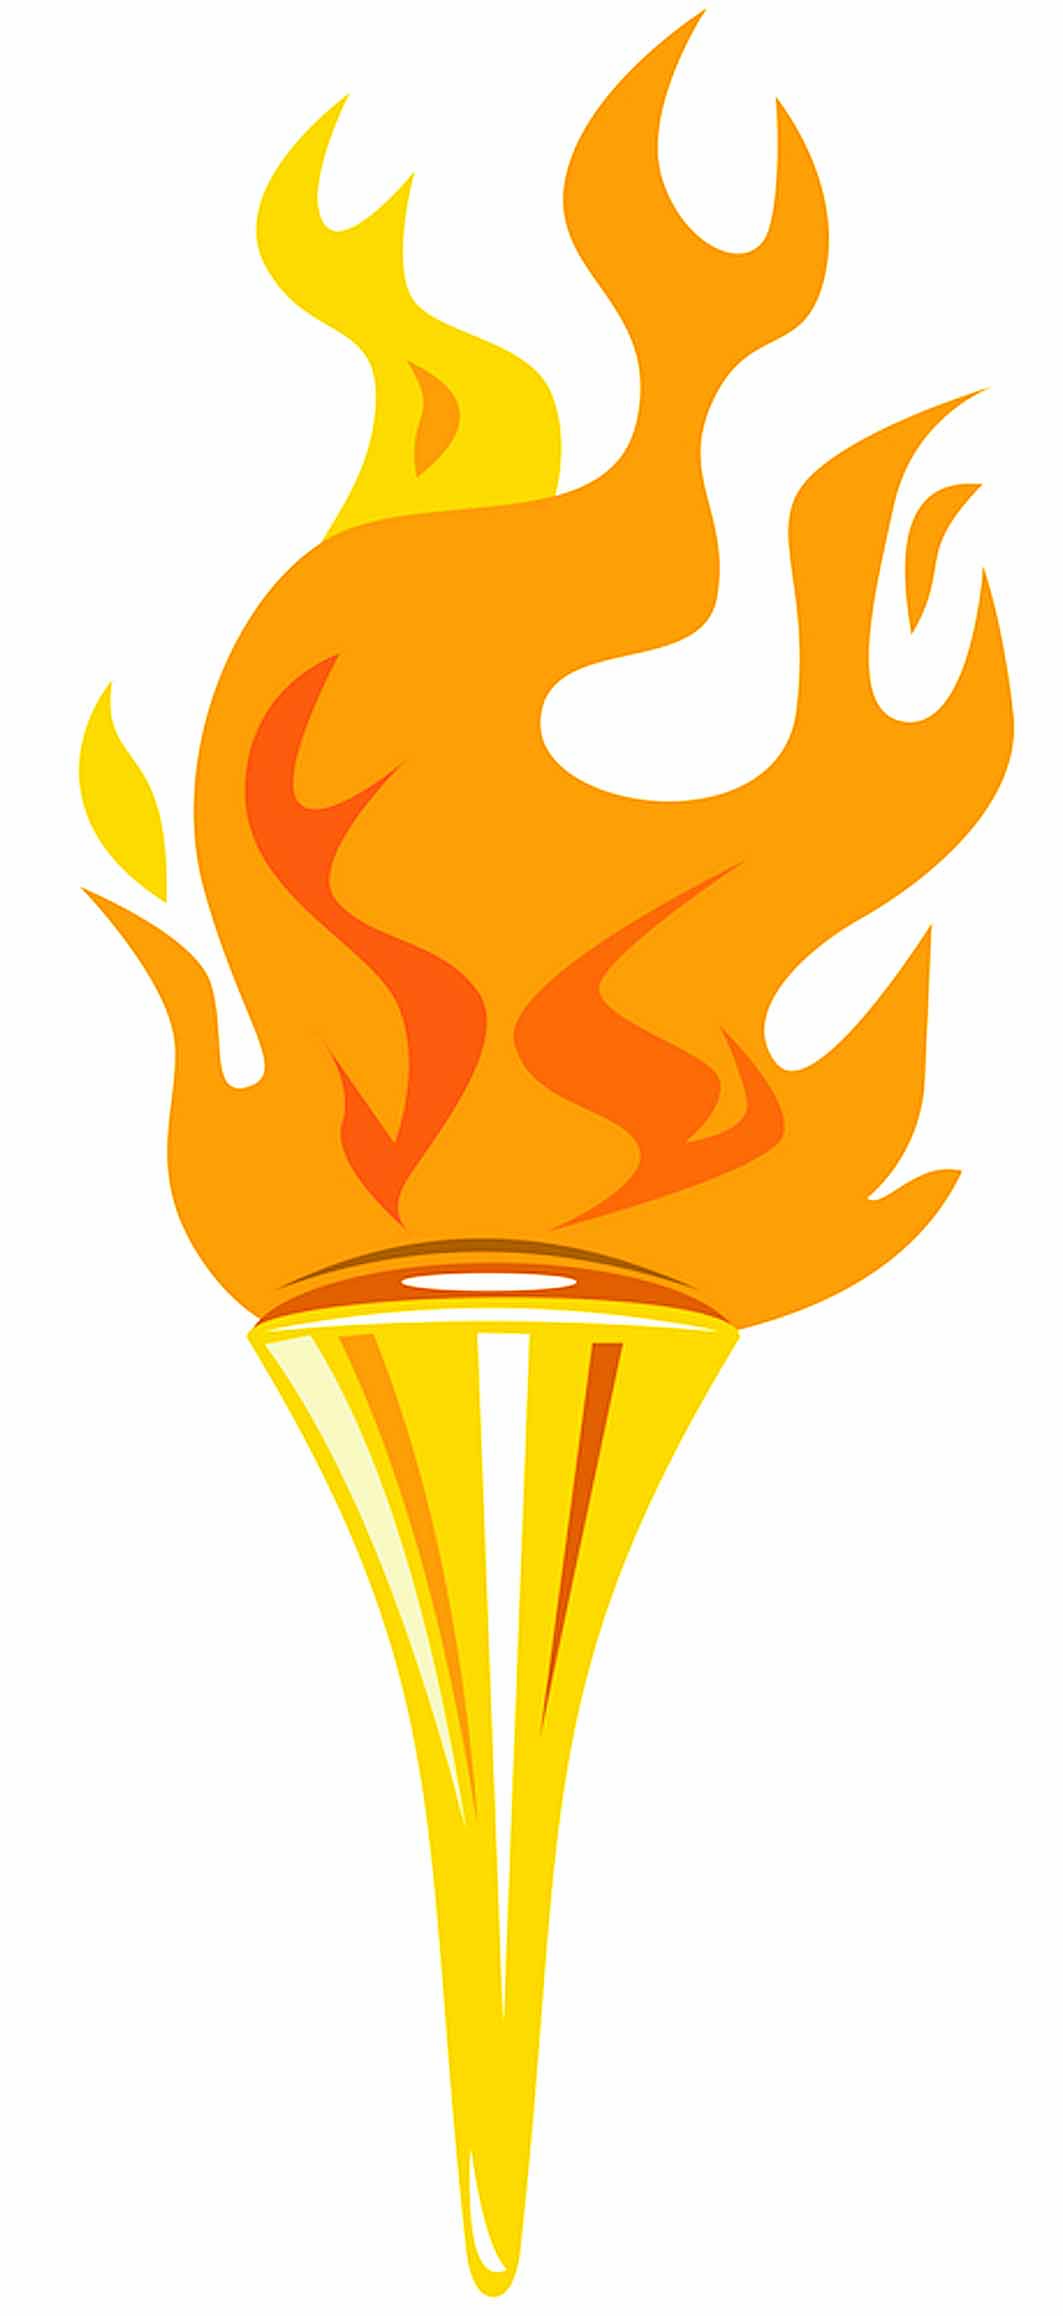 Torch clipart. Olympic